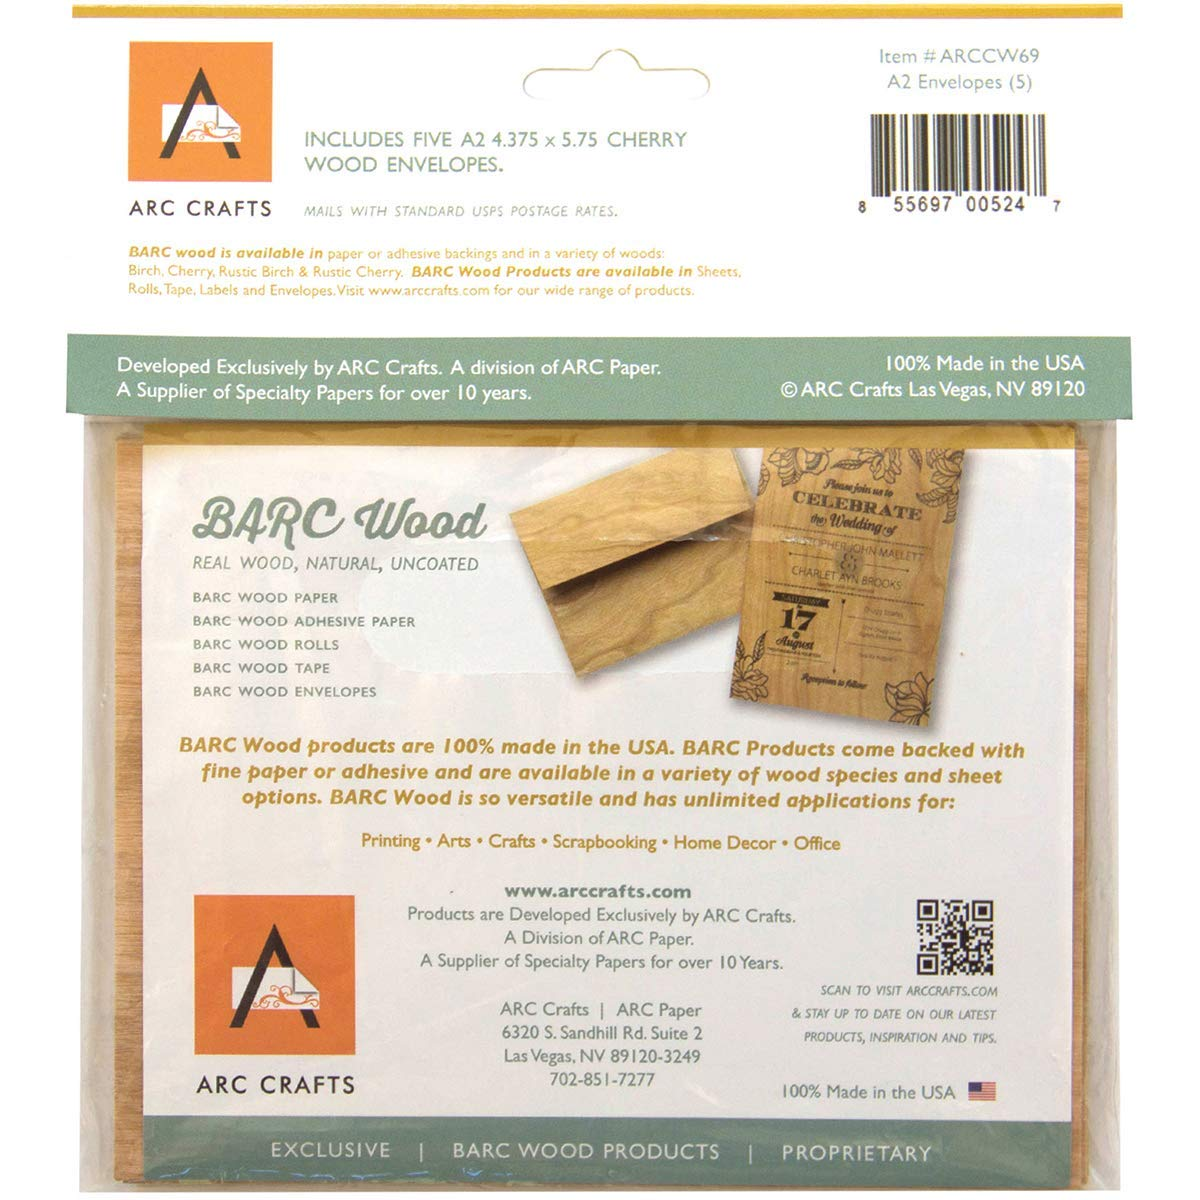 Arc Crafts ARCCW69 Barc Veneer A2 Envelopes 4.375 x 5.75 Cherry Wood 5 Pack